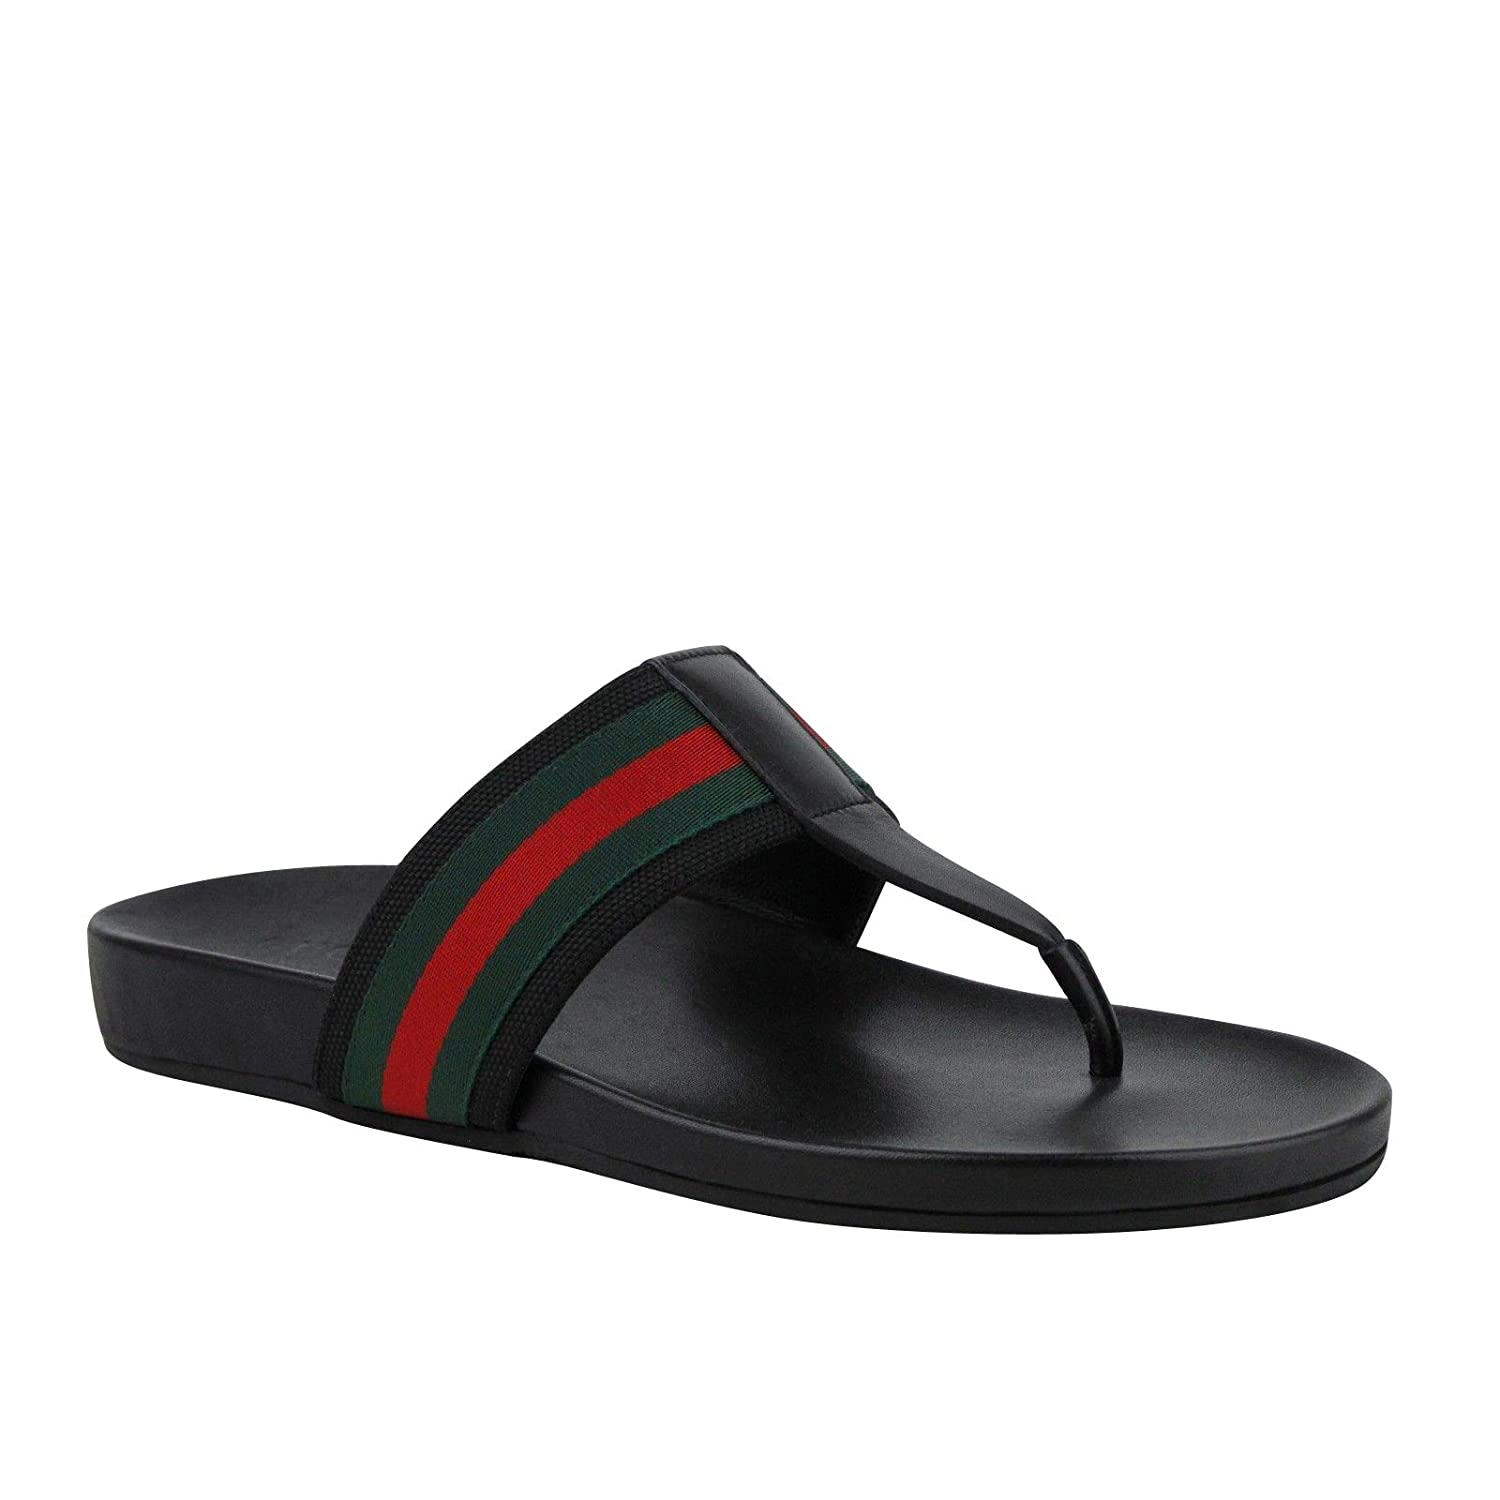 9ed583192 Amazon.com | Gucci Thong Sandals Black Leather with GRG Web Detail 386768  1069 (10.5 G / 11 US) | Sandals